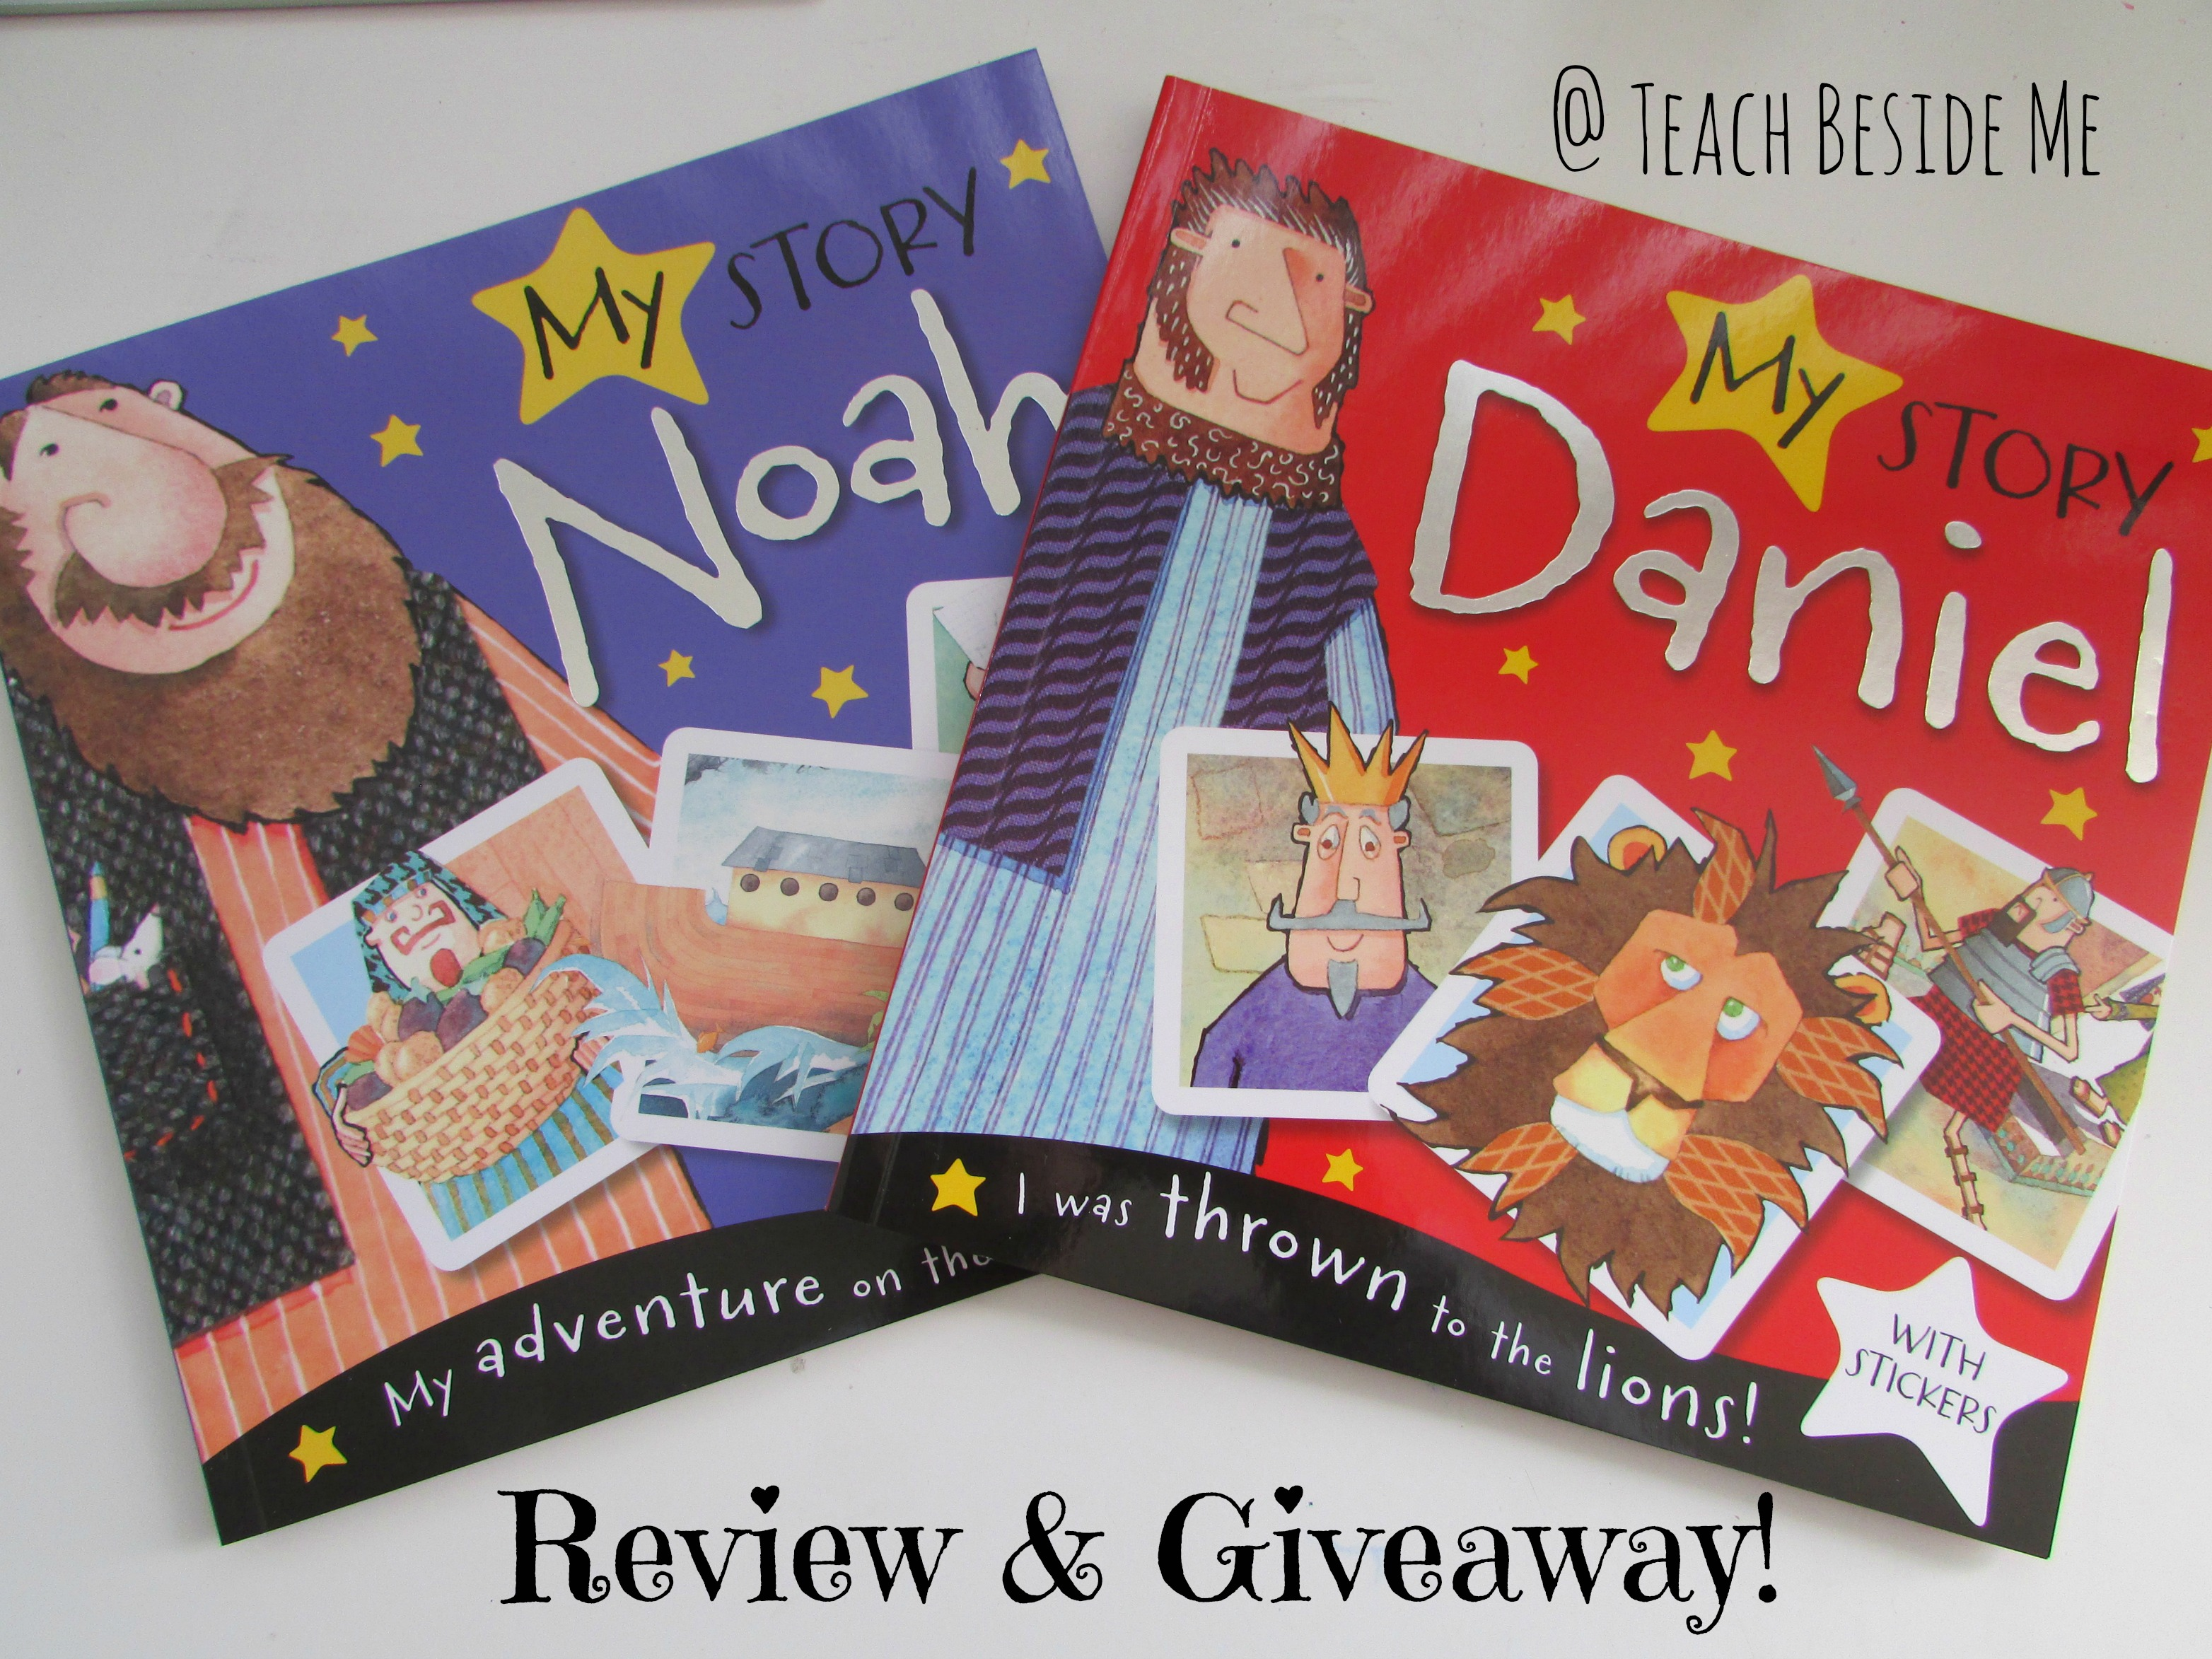 My Story Bible Picture Books Review & Giveaway! - Teach Beside Me